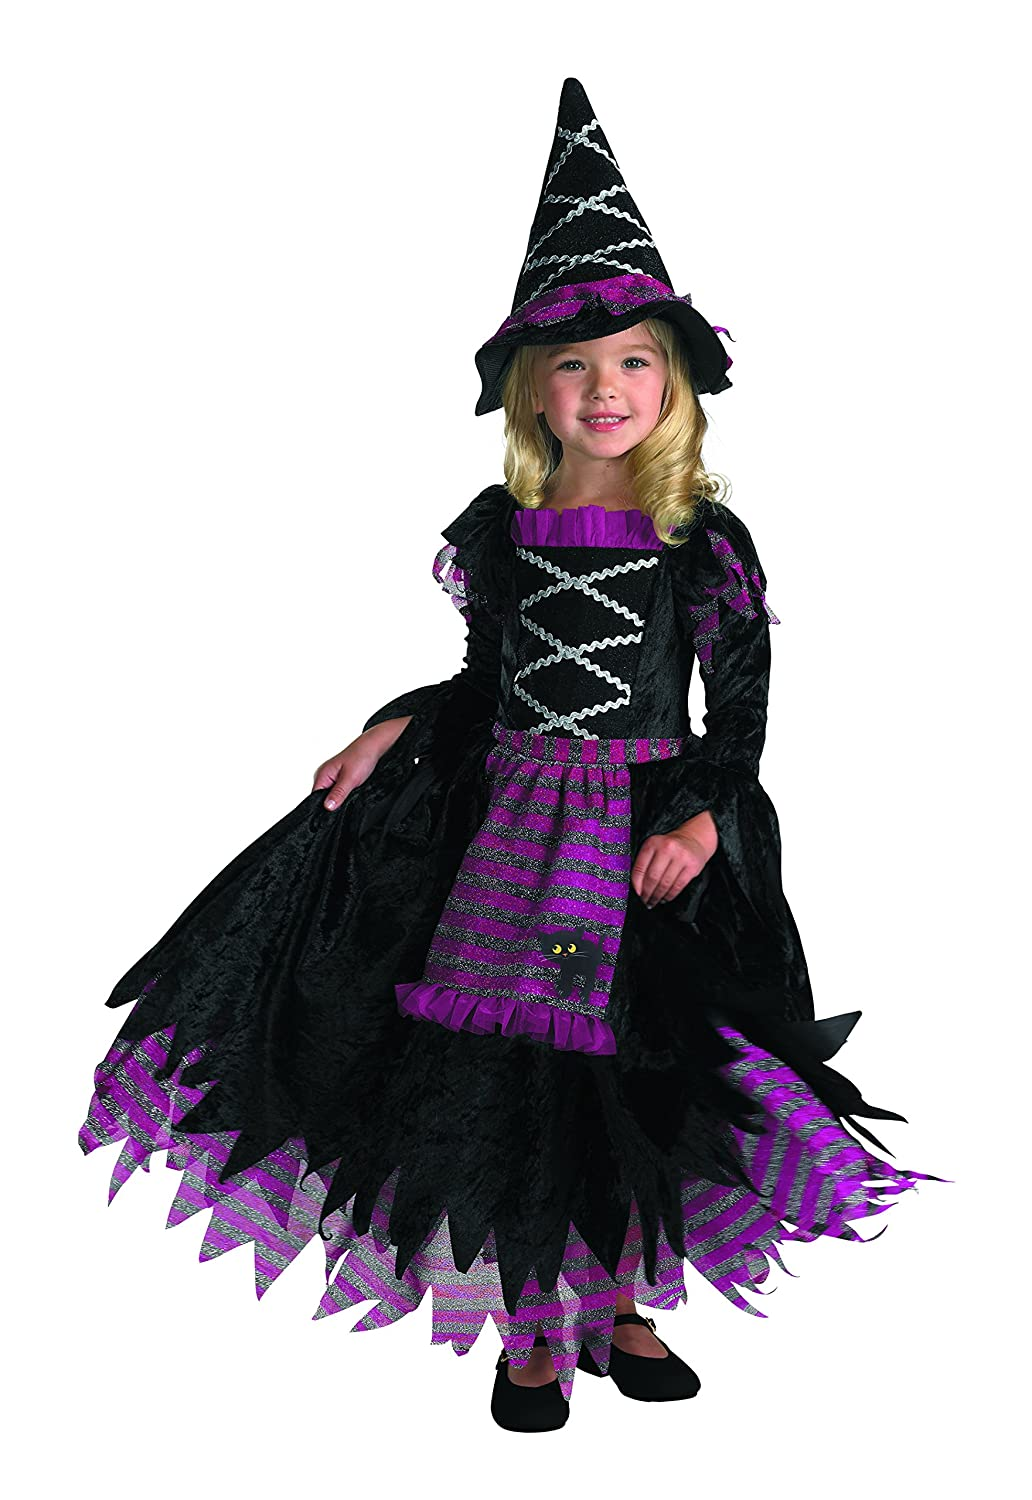 amazoncom disguise girls fairytale toddler witch costume clothing - 5 Girl Halloween Costumes